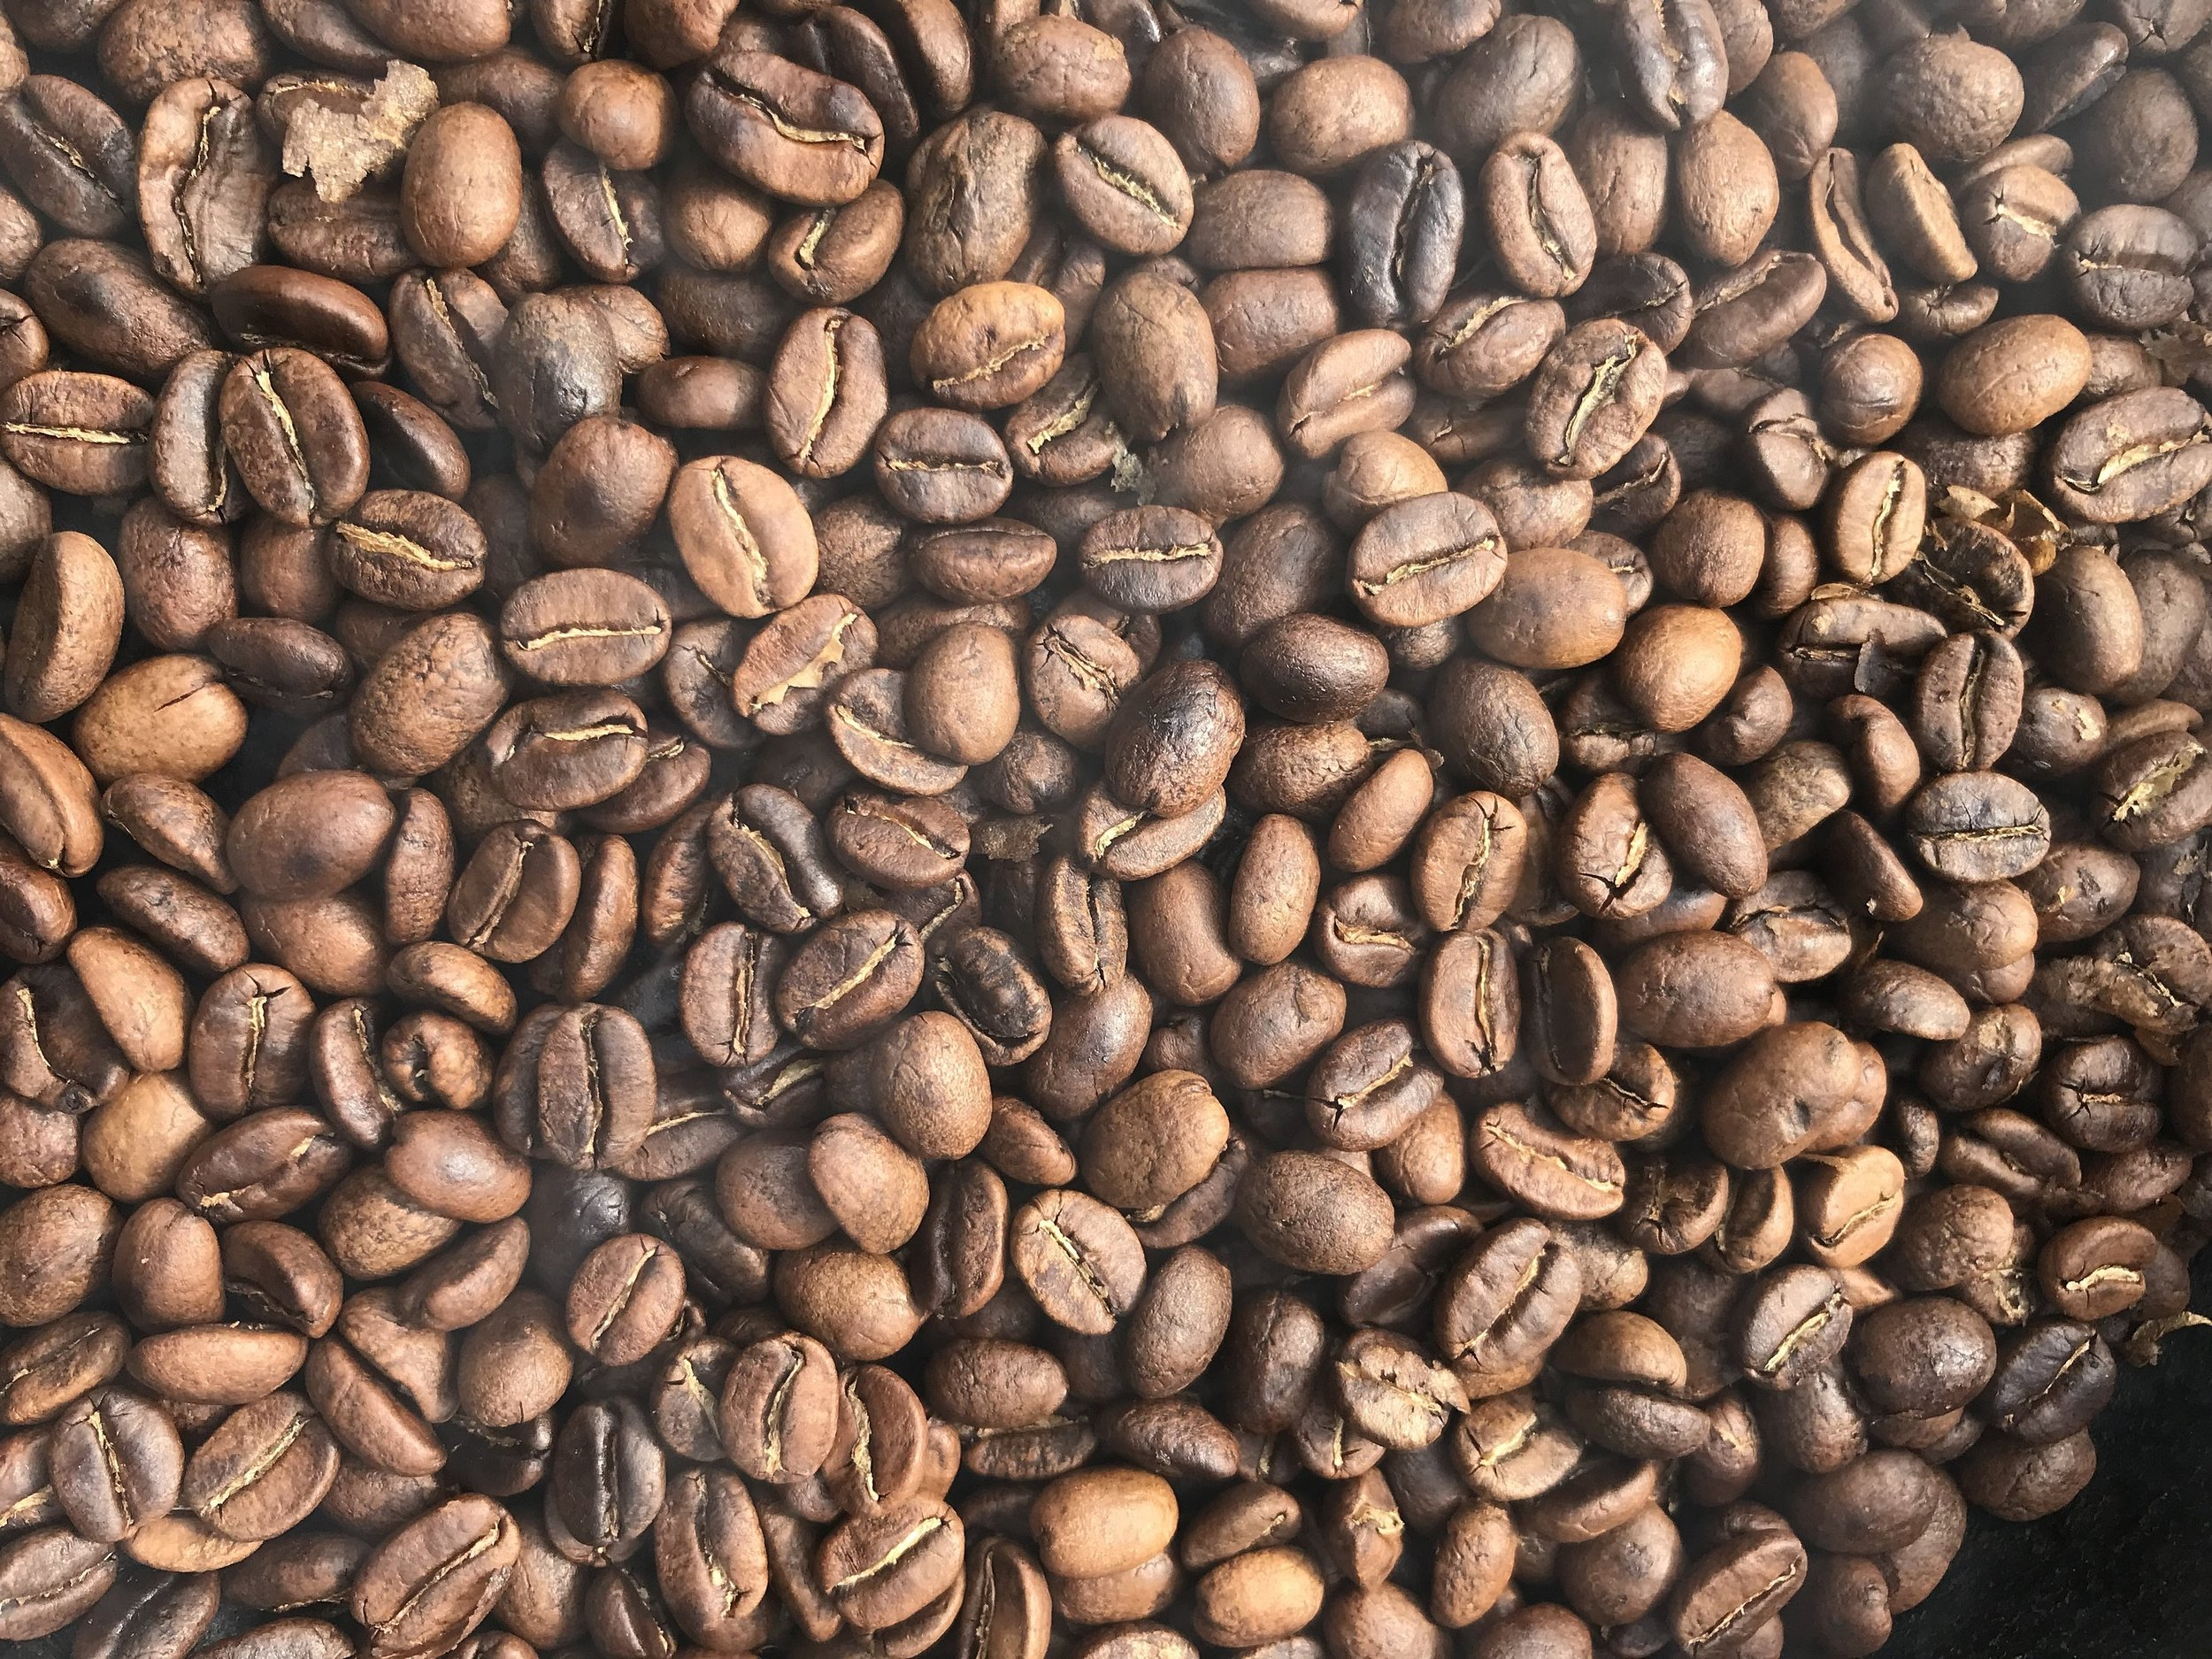 Roasted Kona Coffee